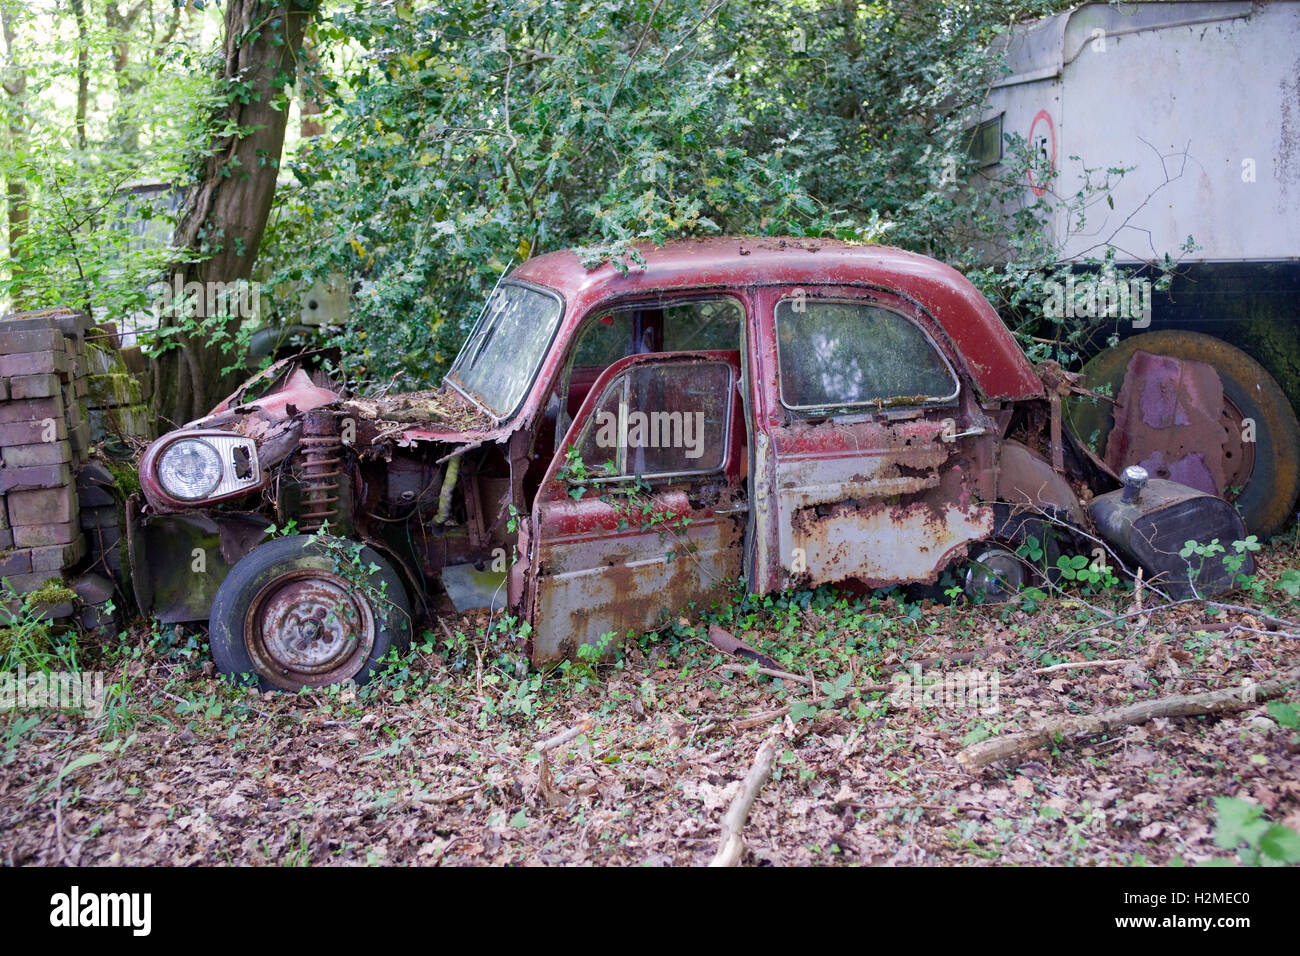 rusty old abandoned car in woods - Stock Image